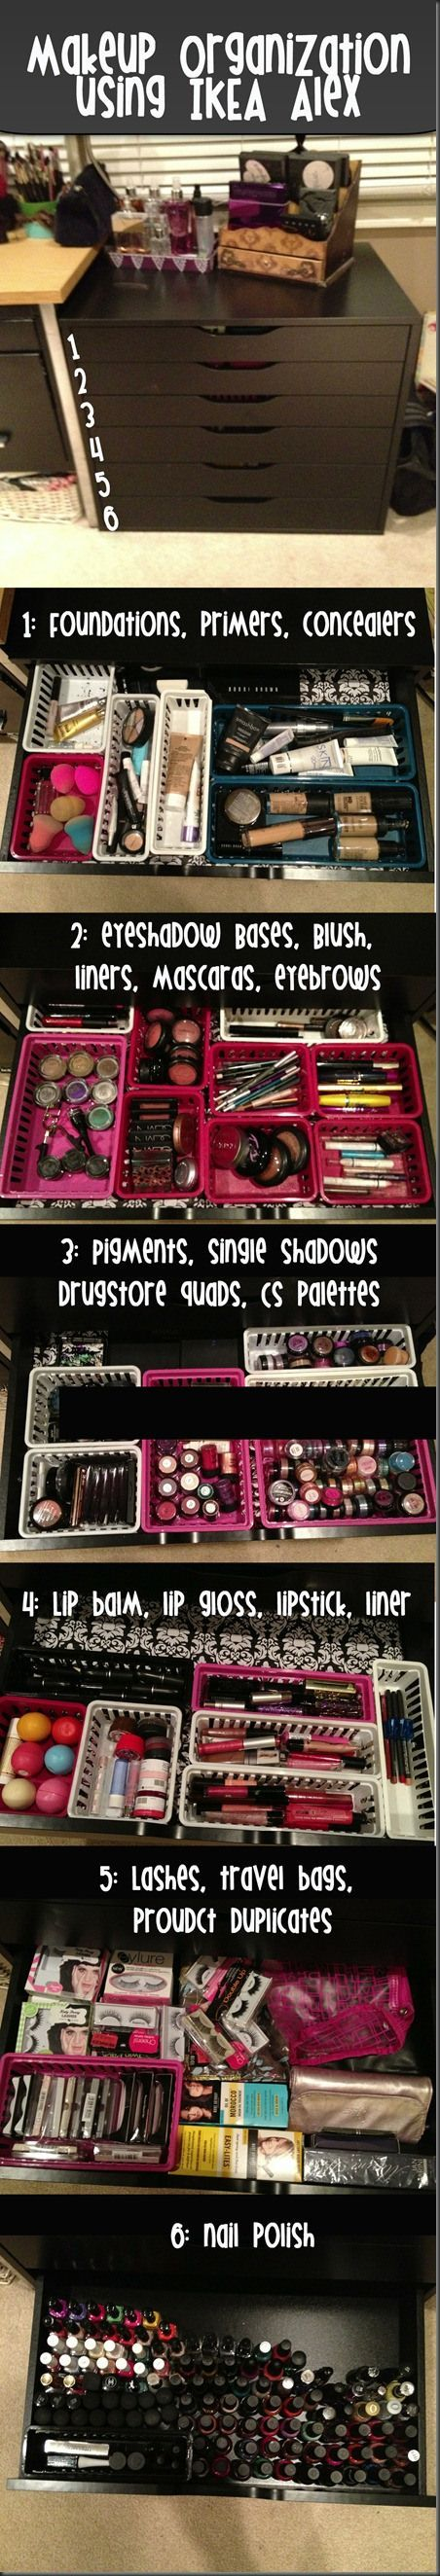 I MUST HAVE THIS !! ..Makeup Organization Using IKEA Alex - The Beauty Goddess